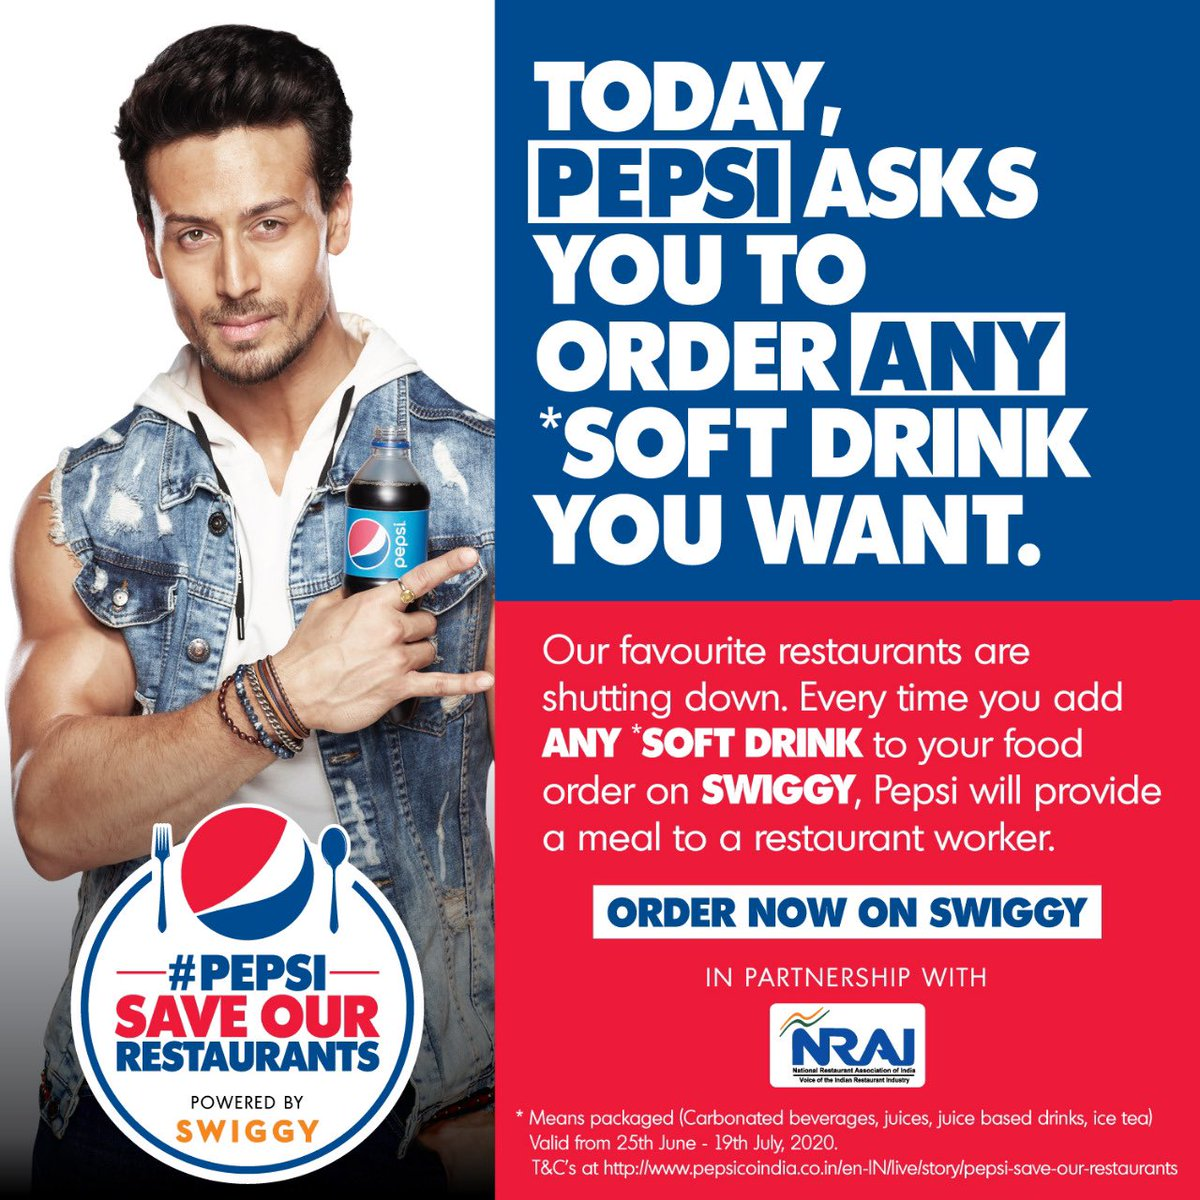 Our restaurant workers do everything they can for us. Today, let's do a little for them. I am contributing to the #PepsiSaveOurRestaurants program. You too can🤘 @PepsiIndia @swiggy_in #NRAI https://t.co/VDU8eCXPvo